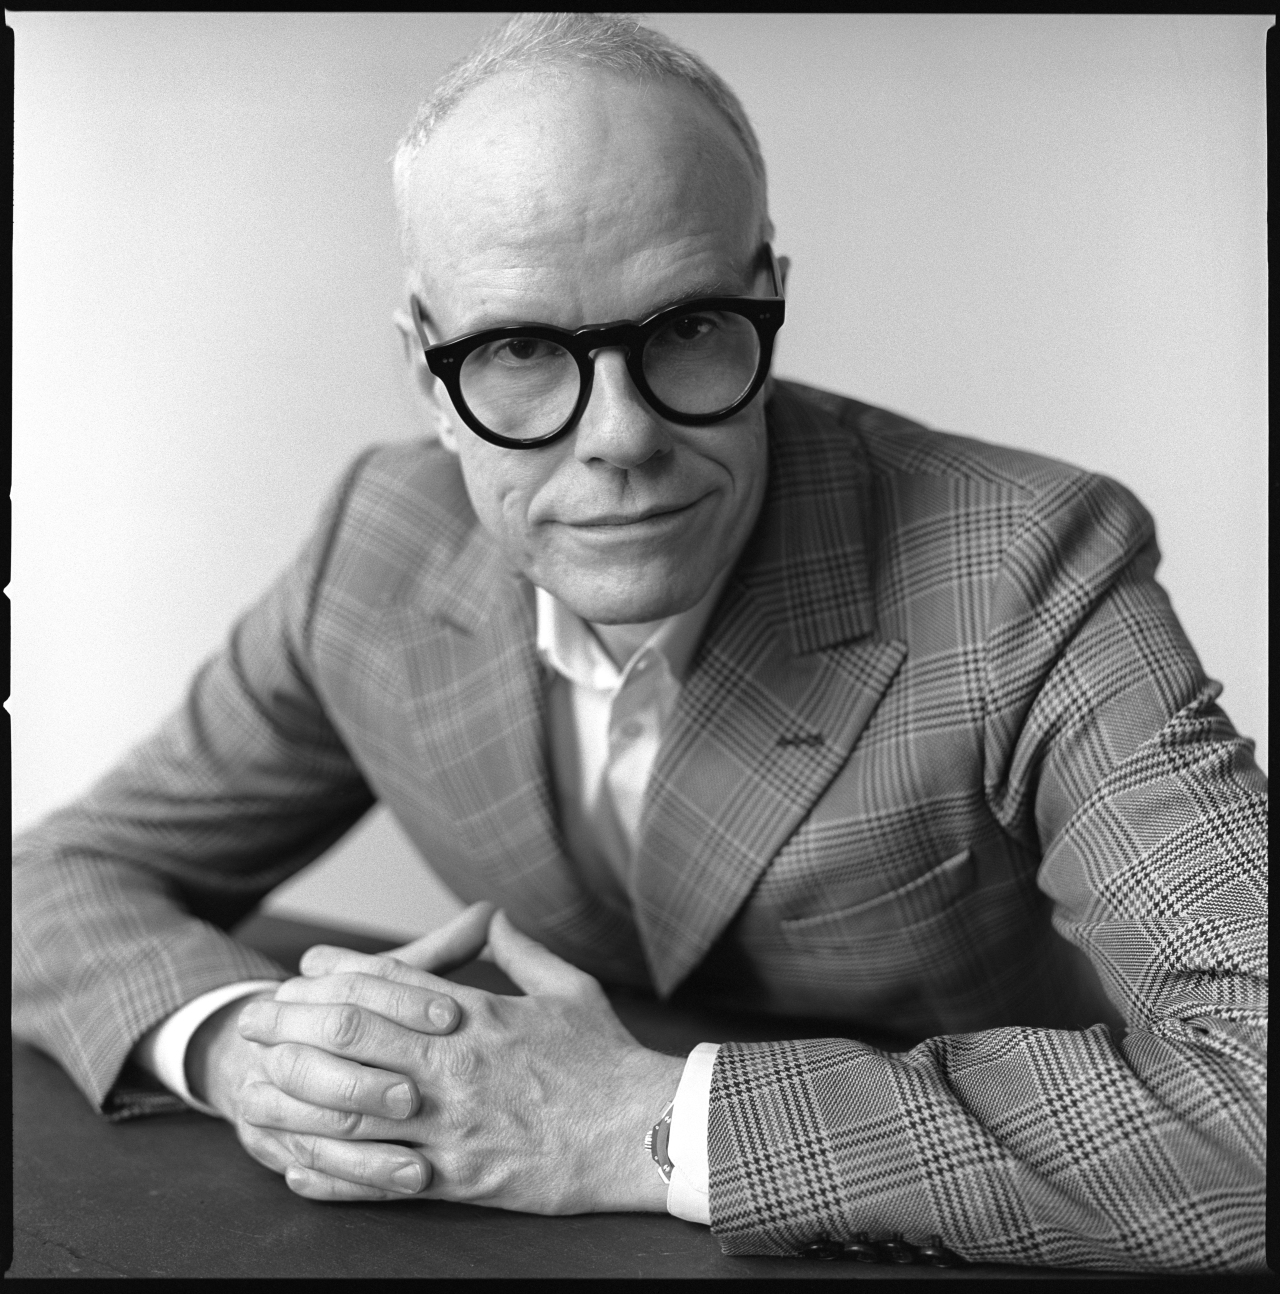 Hans Ulrich Obrist, the artistic director of the Serpentine Gallery